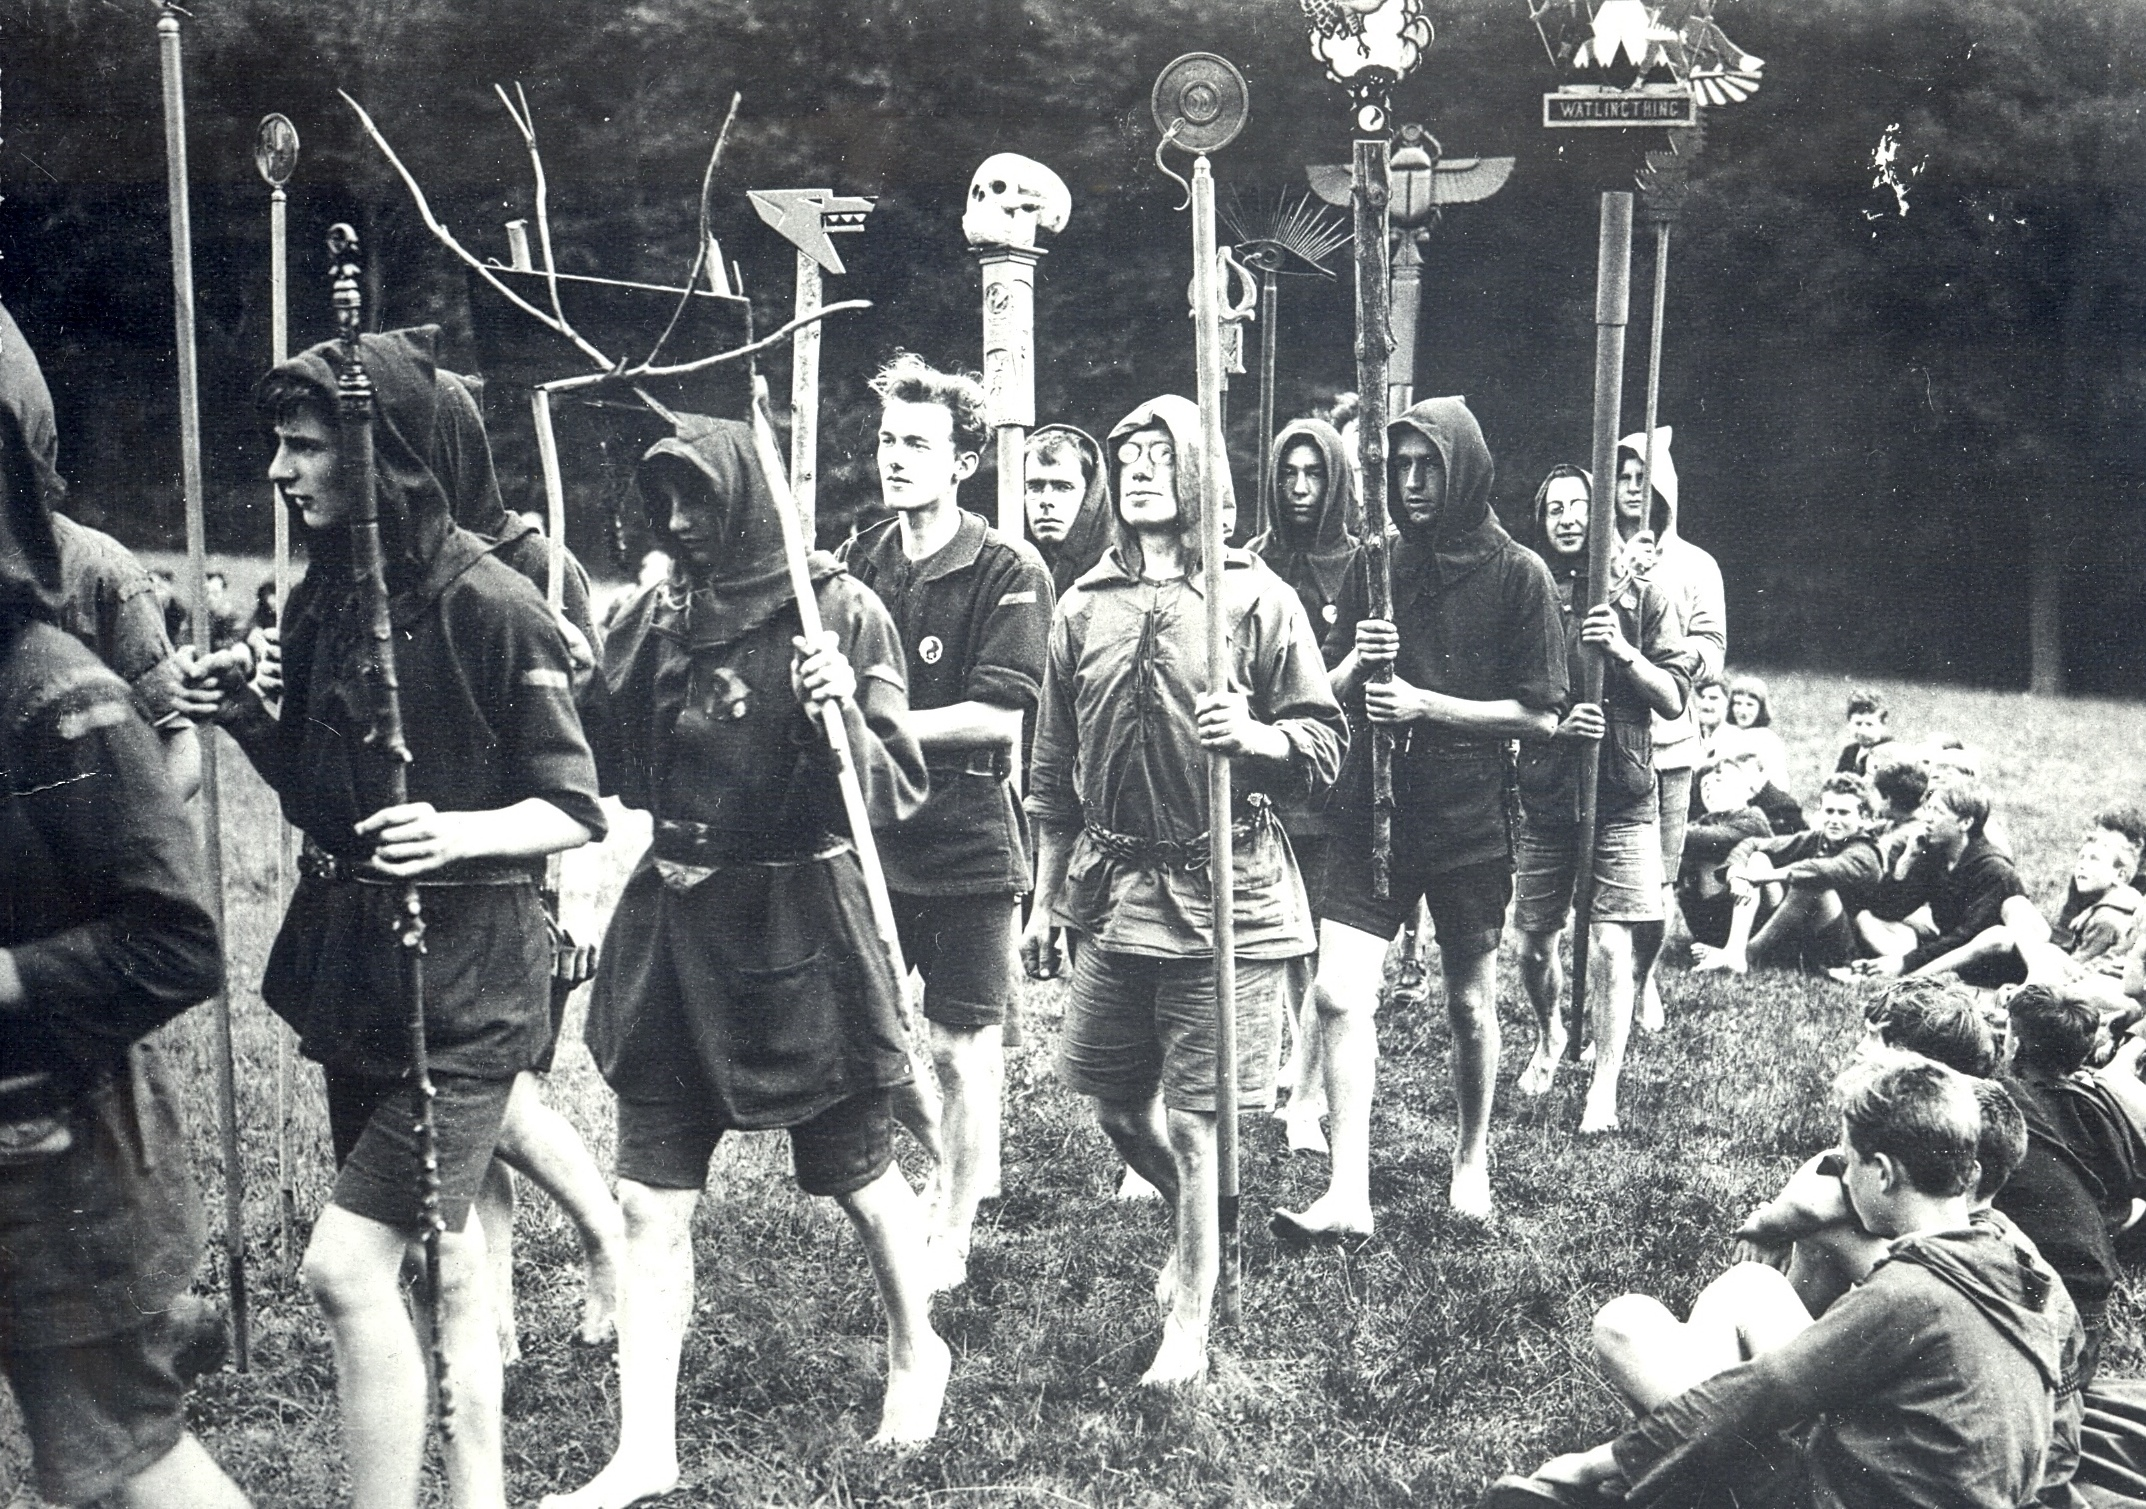 Image-5-Kibbo-Kift-Kindred-men-and-boys-on-camp-parade-with-totems-1925.jpg